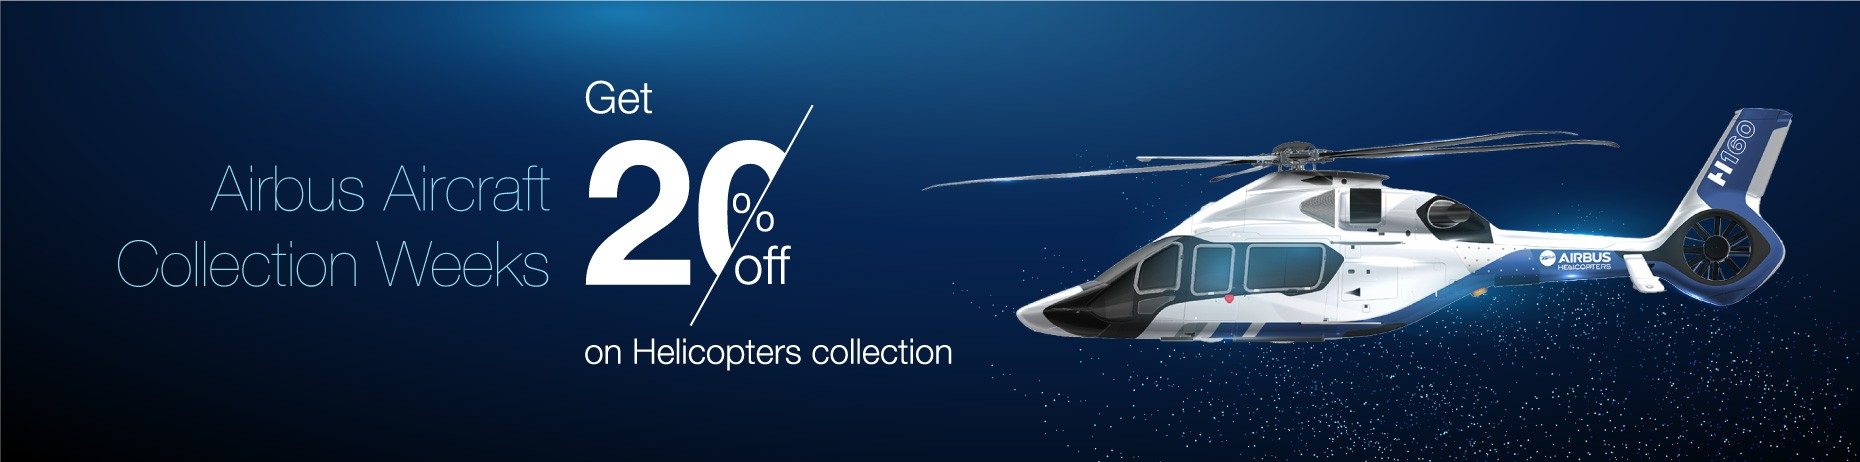 AACW HELICOPTERS